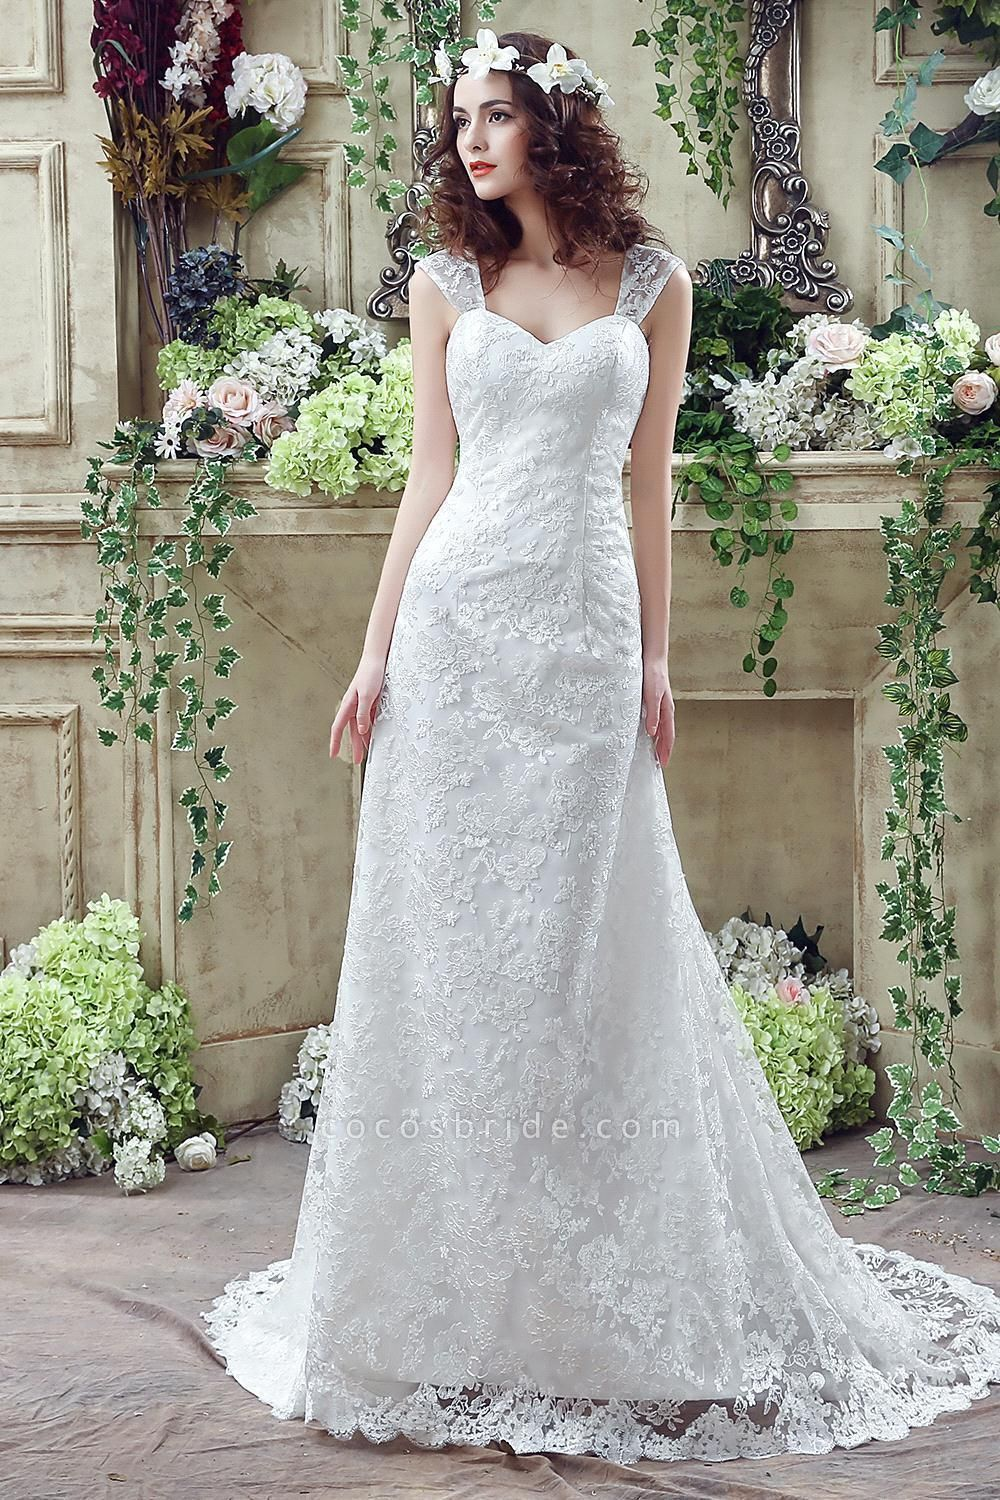 Lace Straps Sweetheart A-line Tulle Wedding Dress